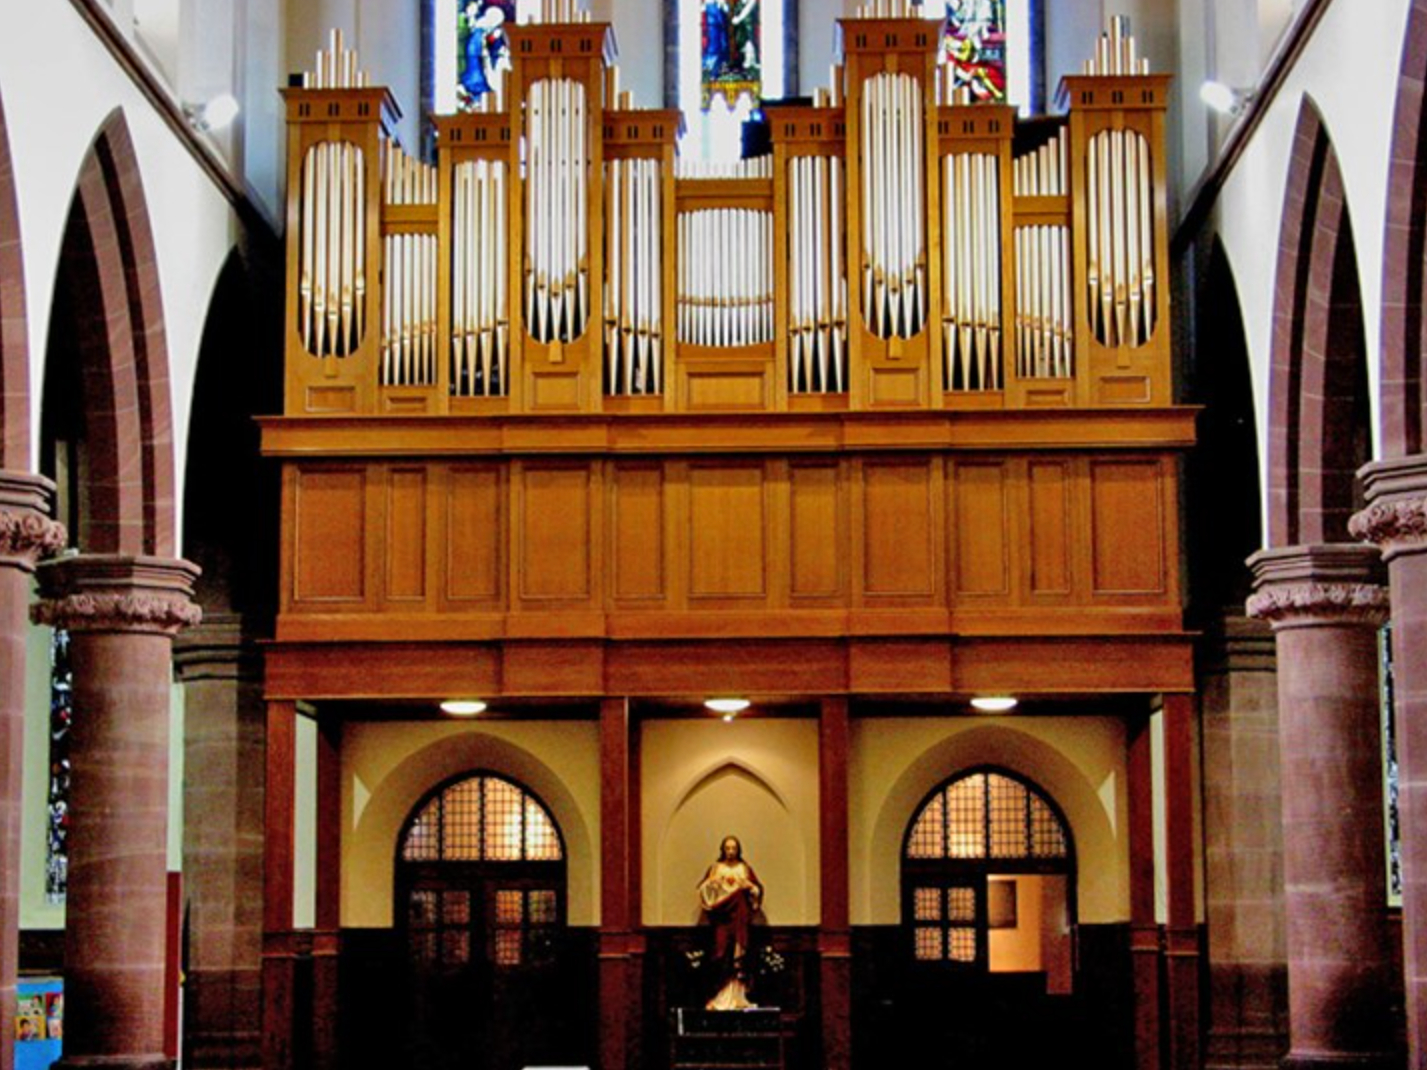 St Werburghs Church Organ